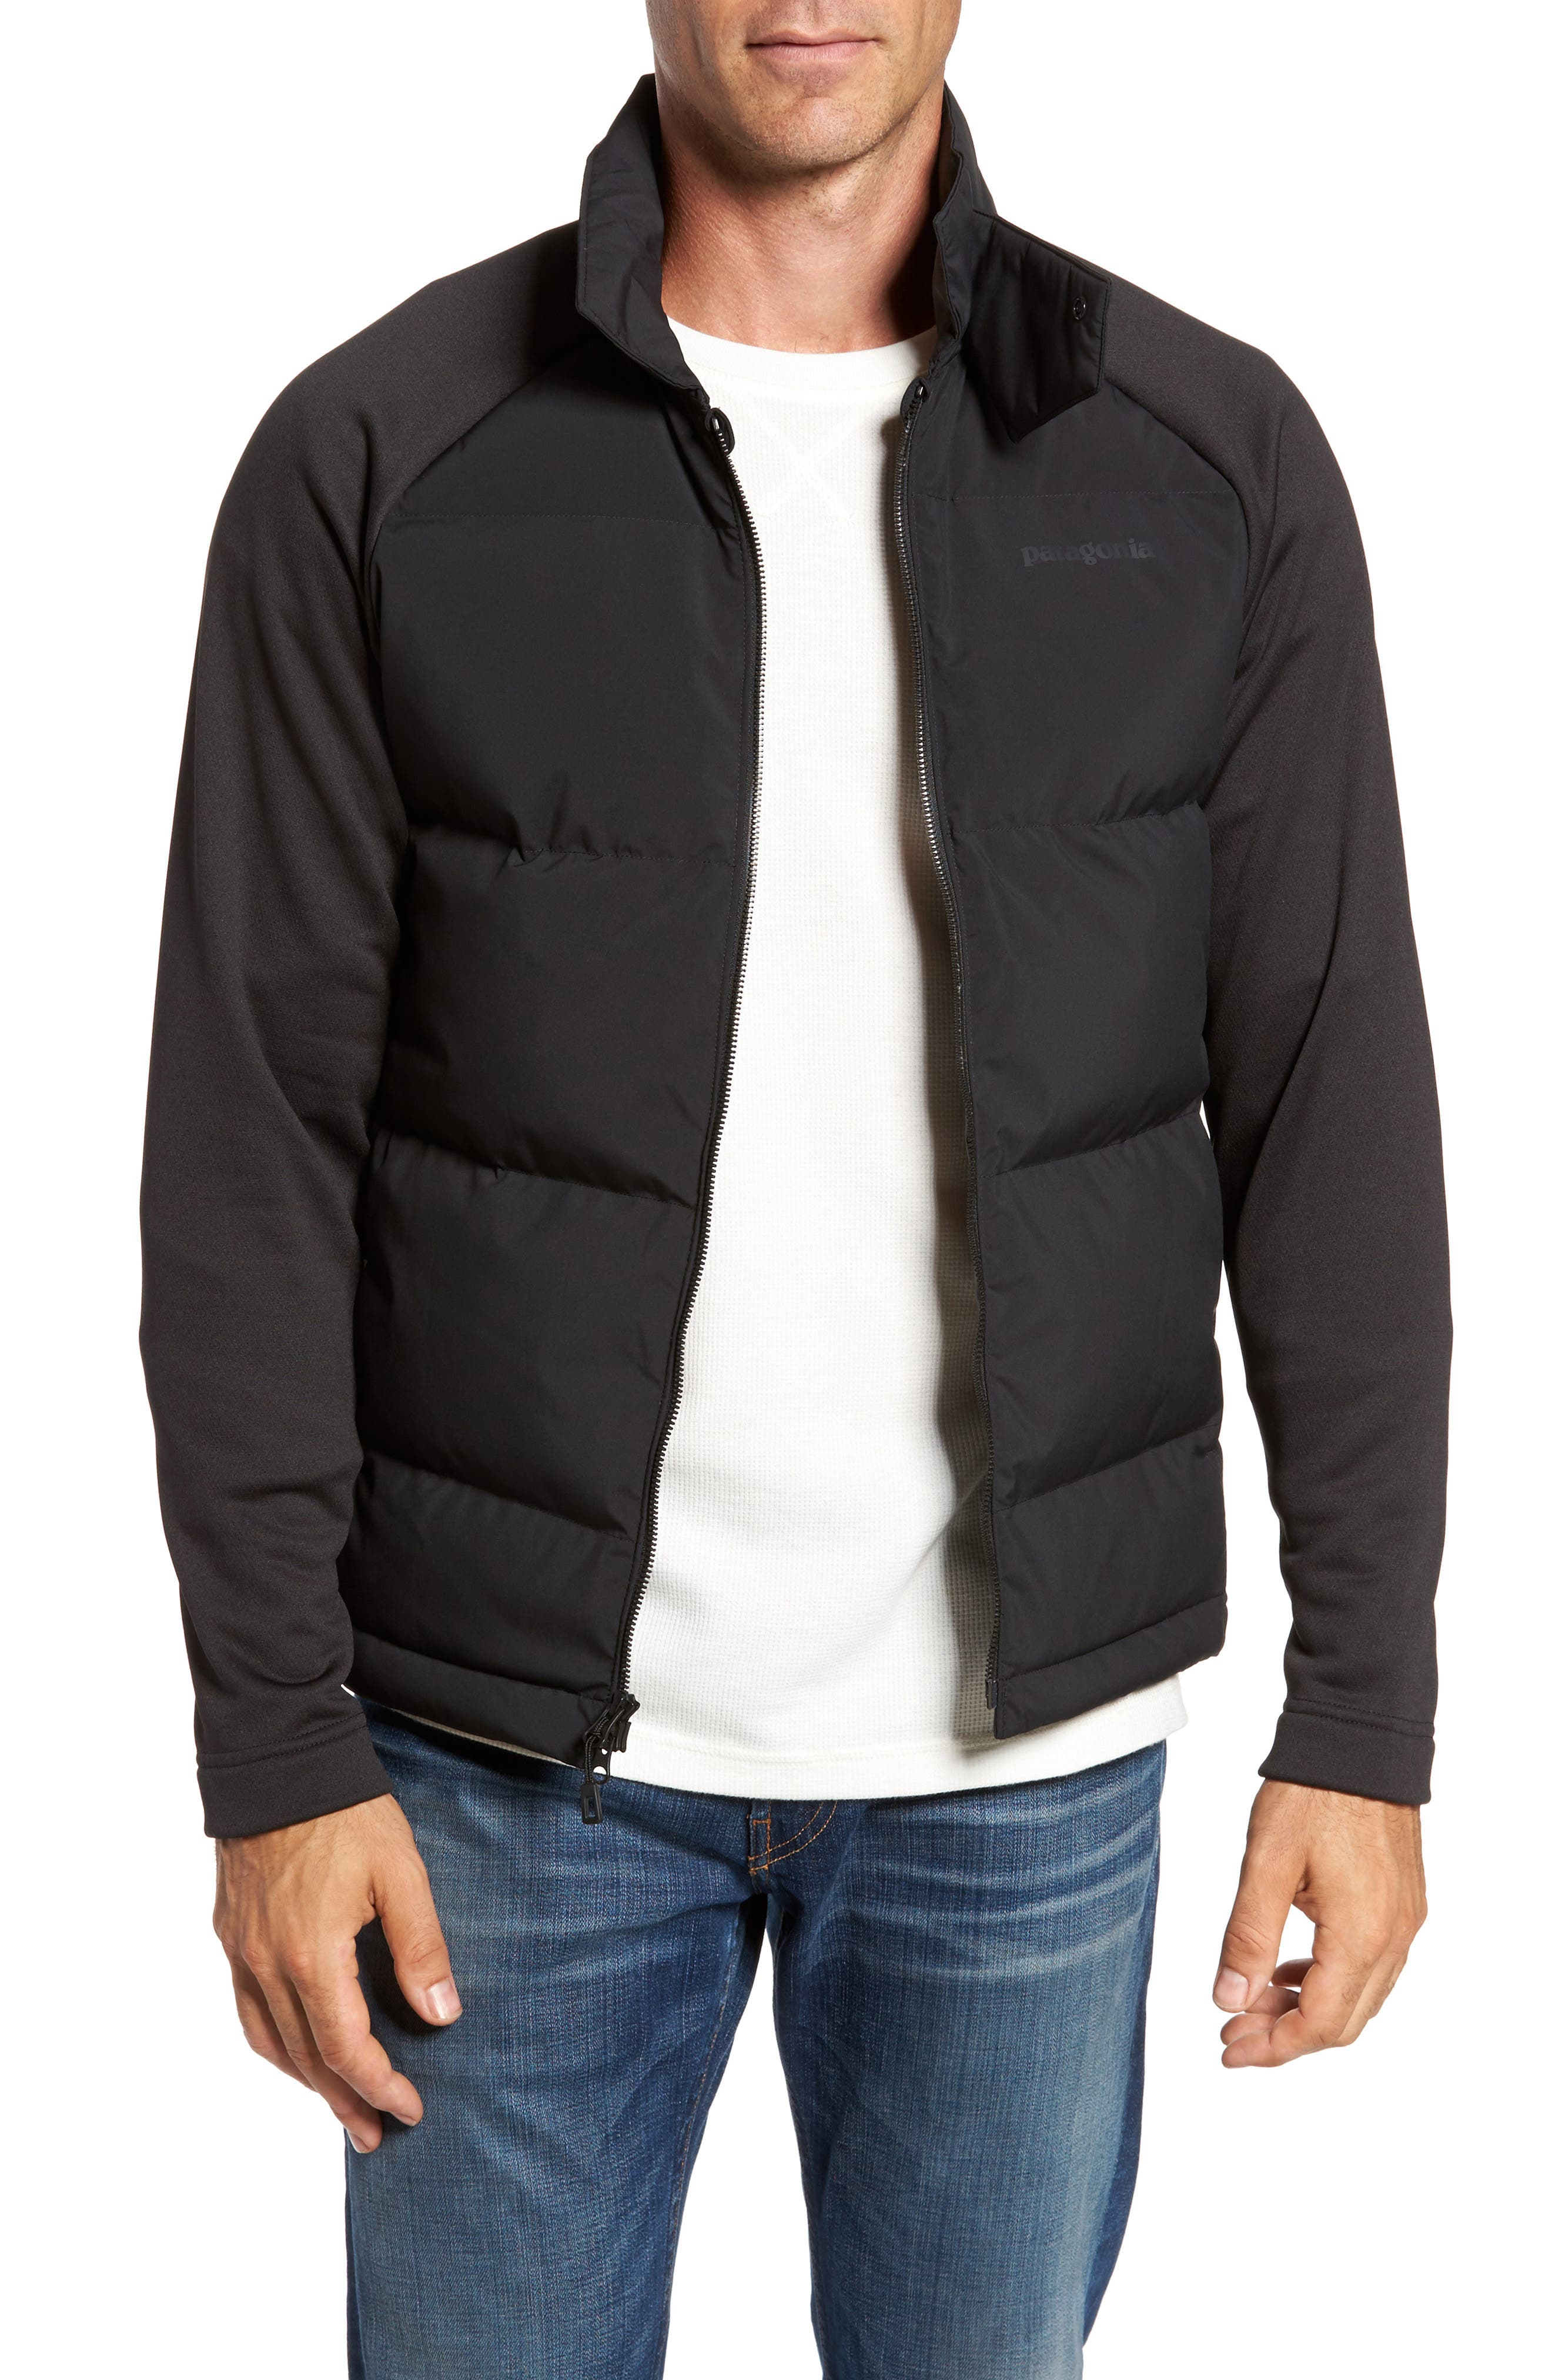 ukiah men This deal is already going fast patagonia men's ukiah down hybrid jacket - small - industrial green for $11999 was $19900.